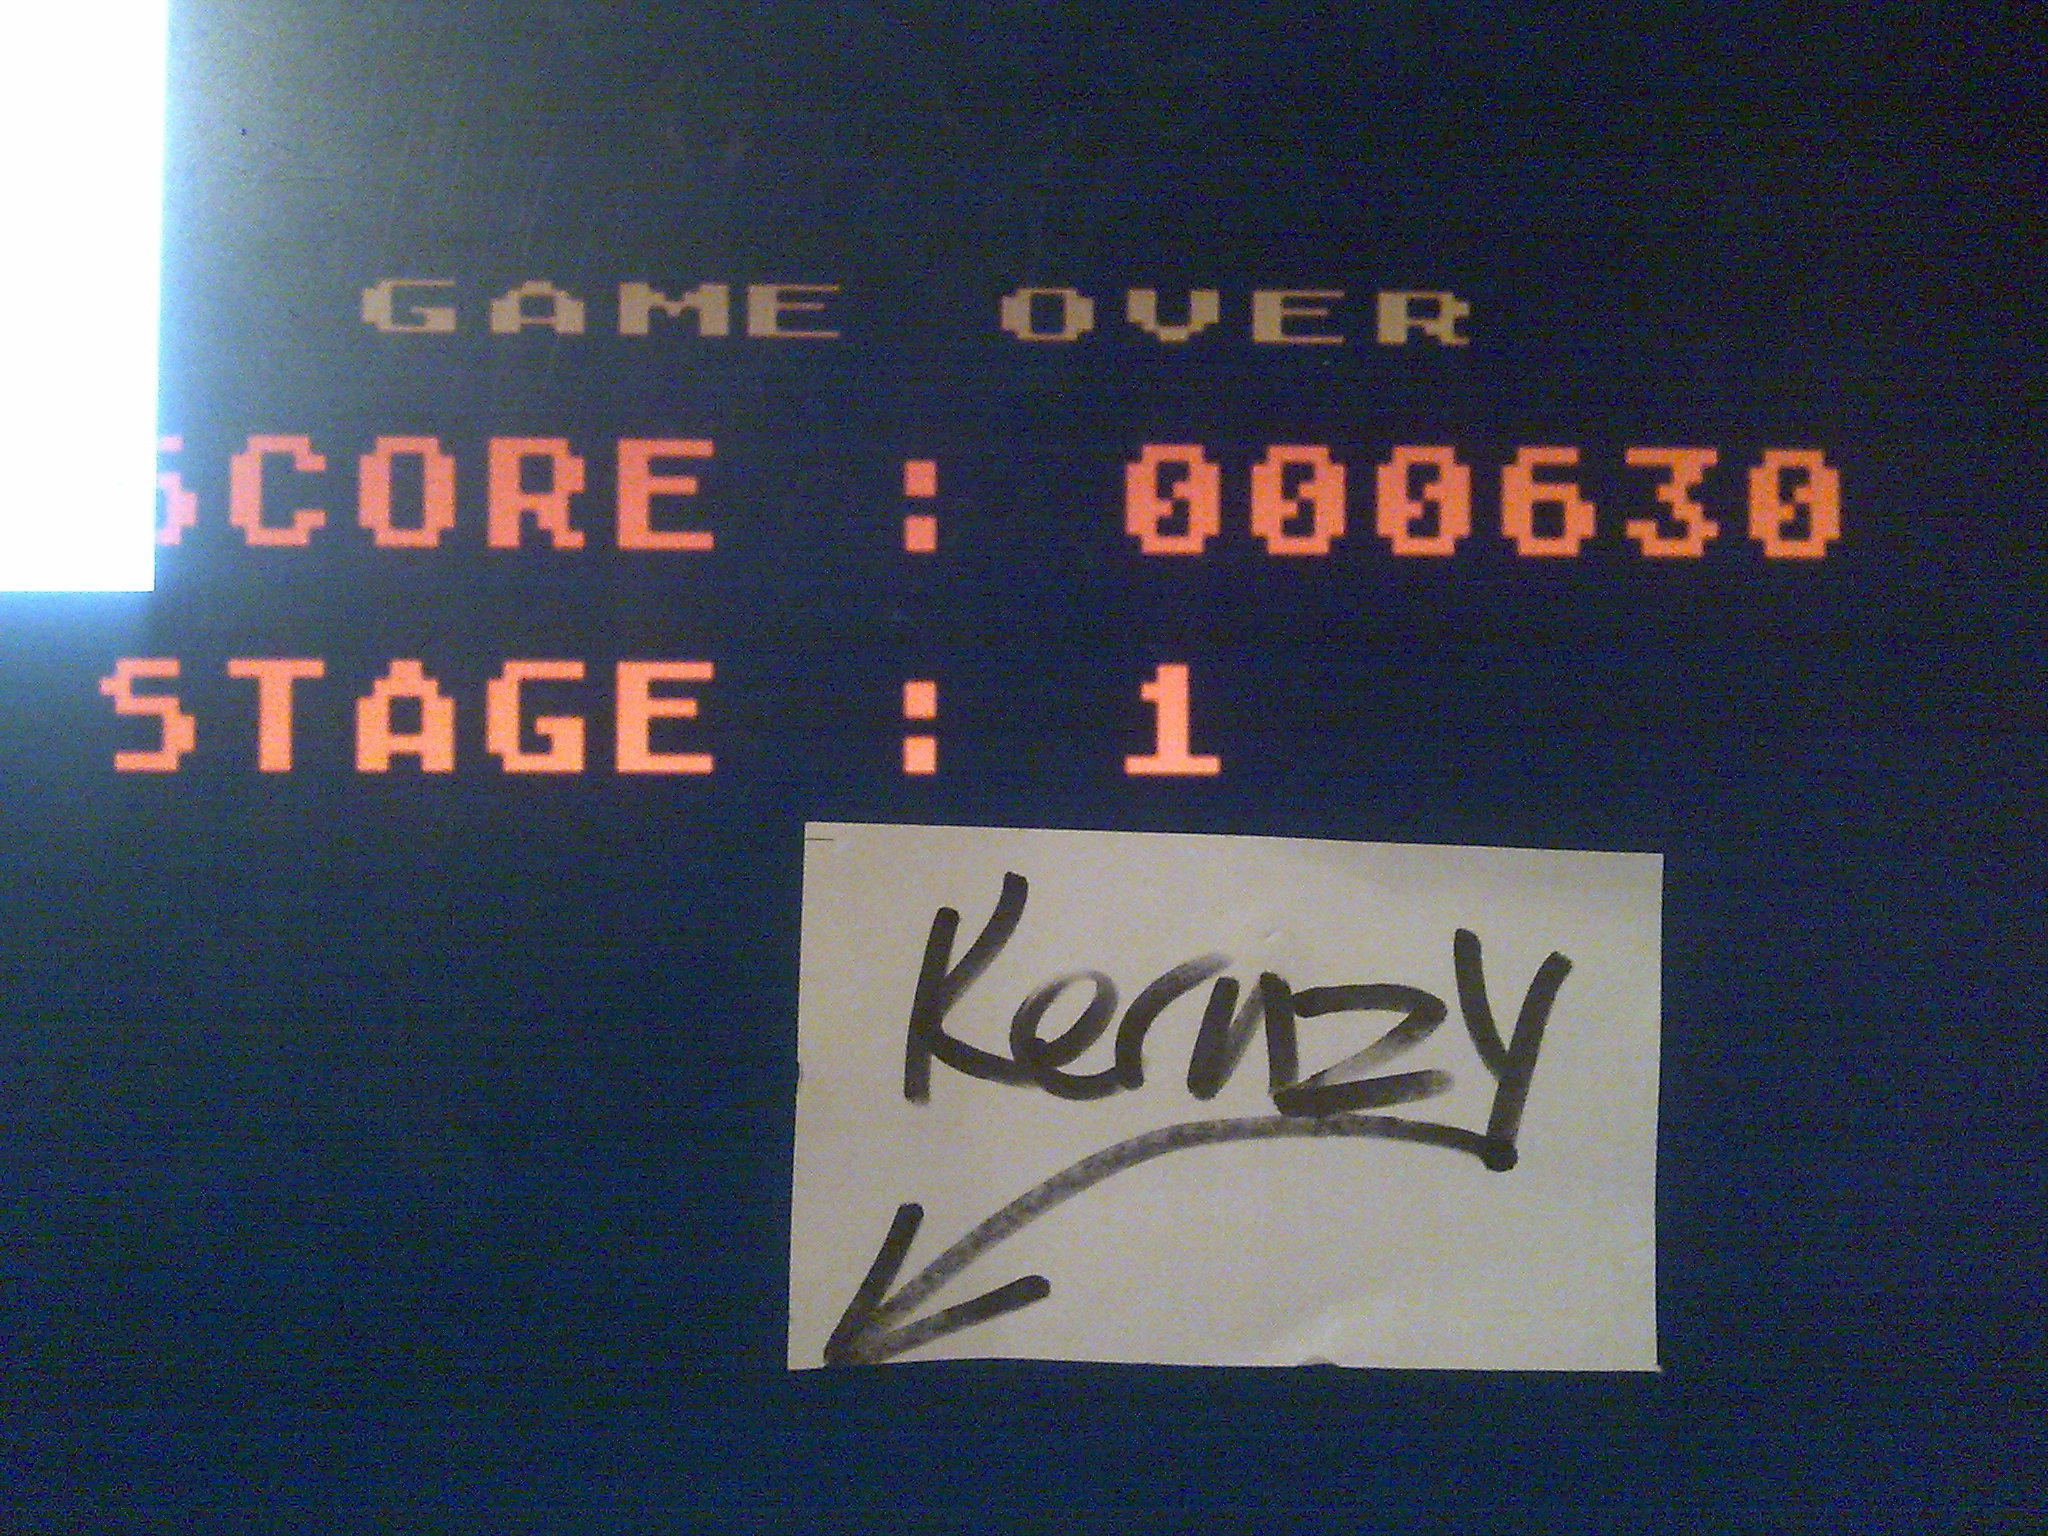 kernzy: Green Beret (Atari 400/800/XL/XE Emulated) 630 points on 2014-10-16 19:48:50